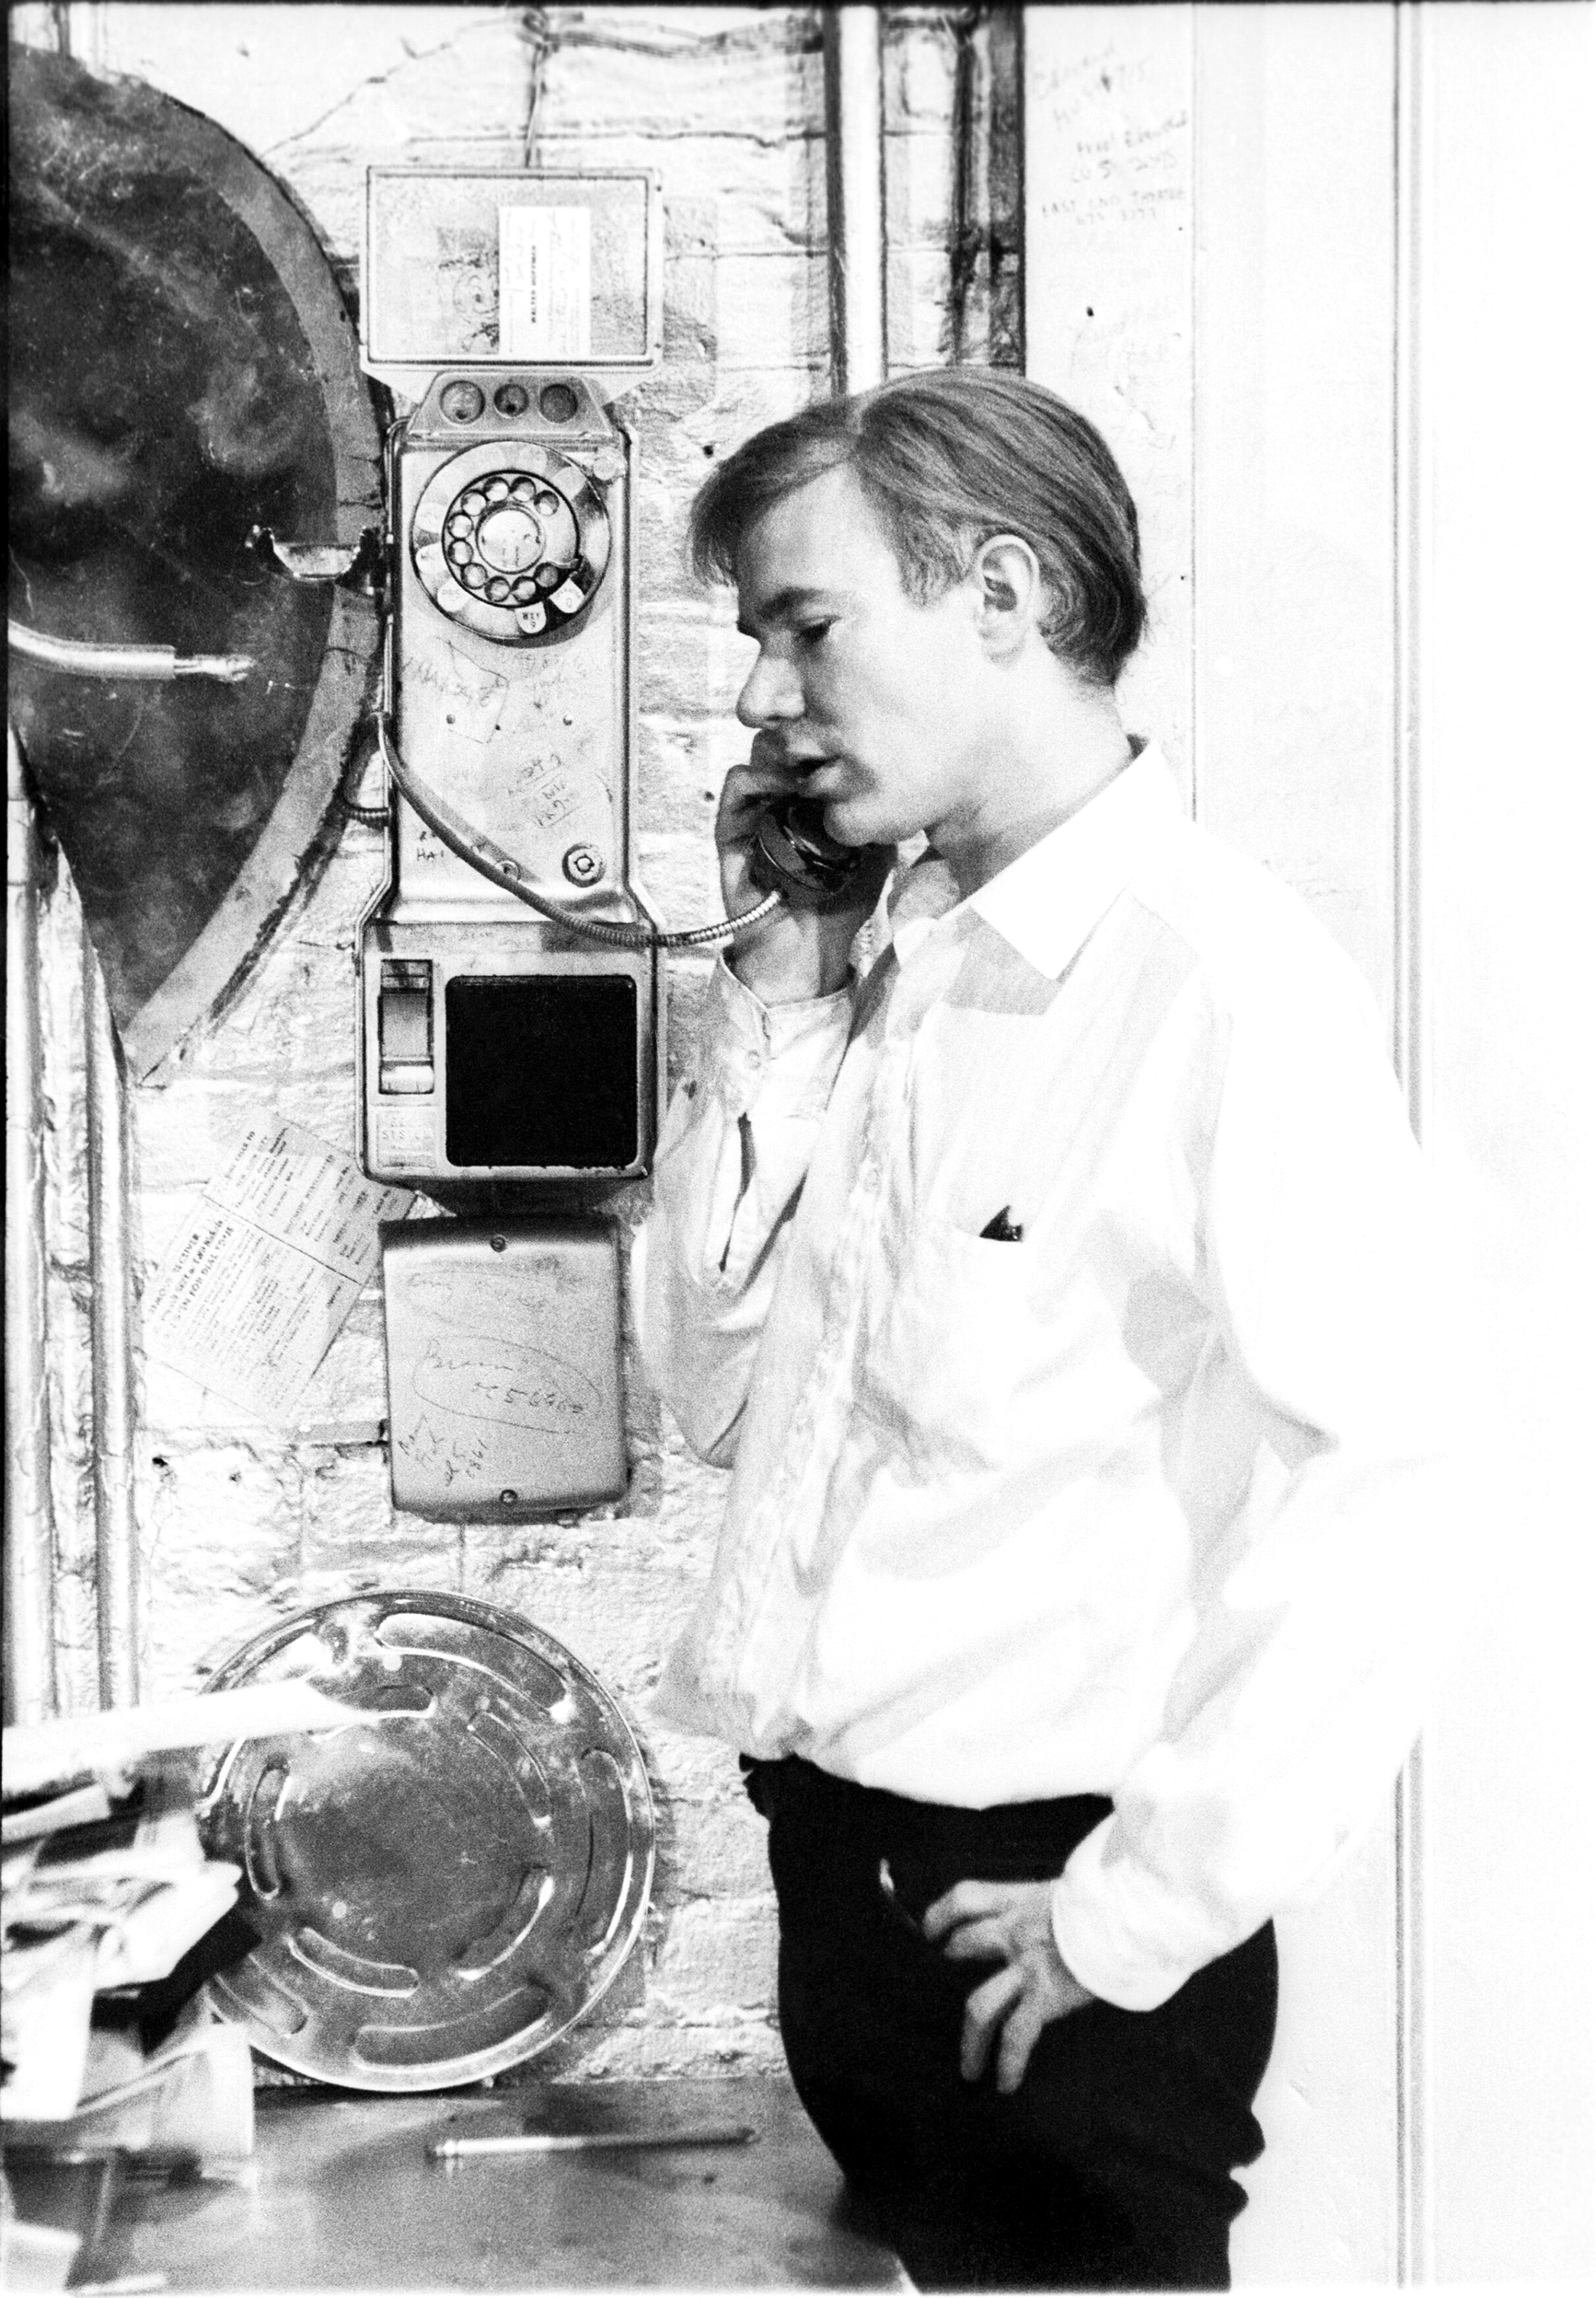 Andy Warhol on payphone at the Factory, 1964